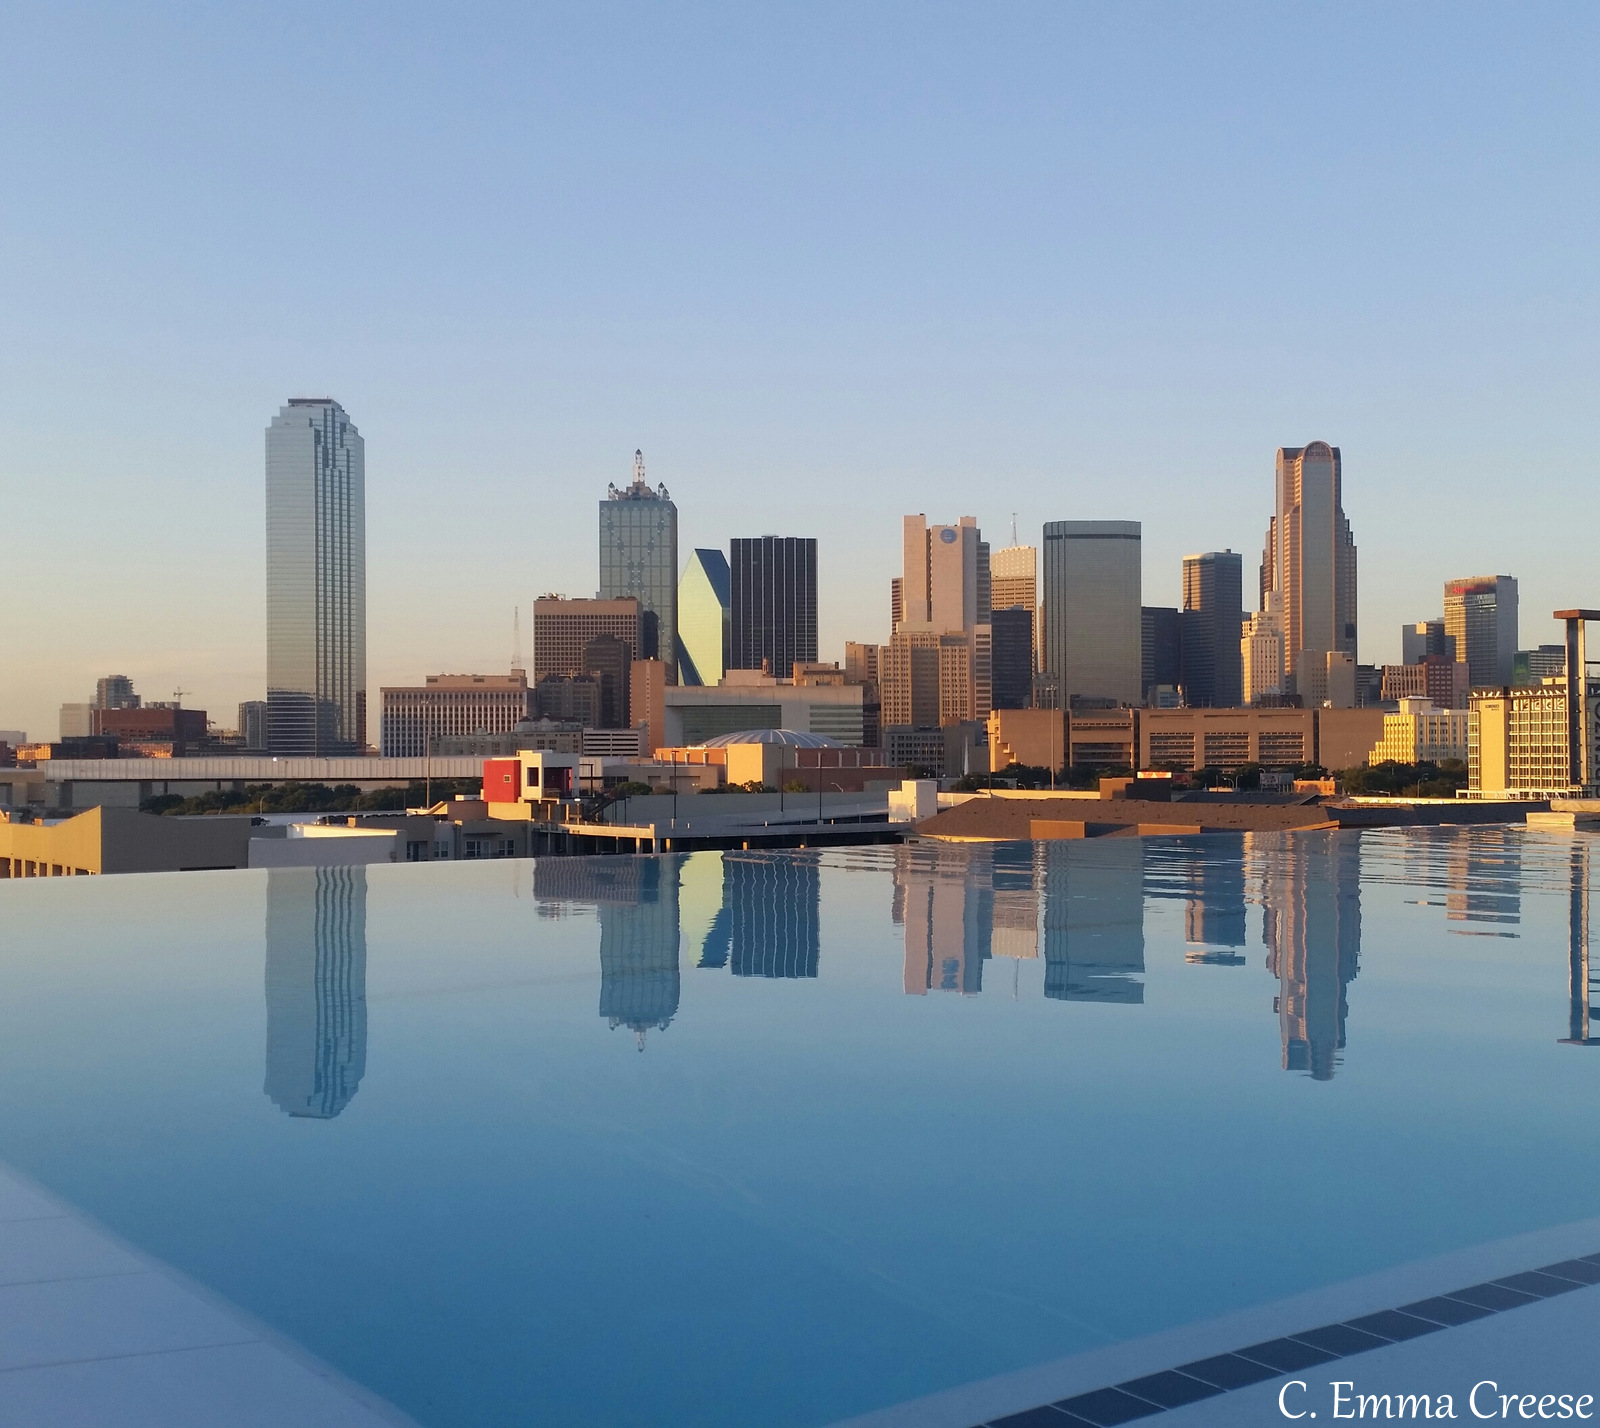 US Roadtrip Diary: A serving of Dallas glamour and cowboys